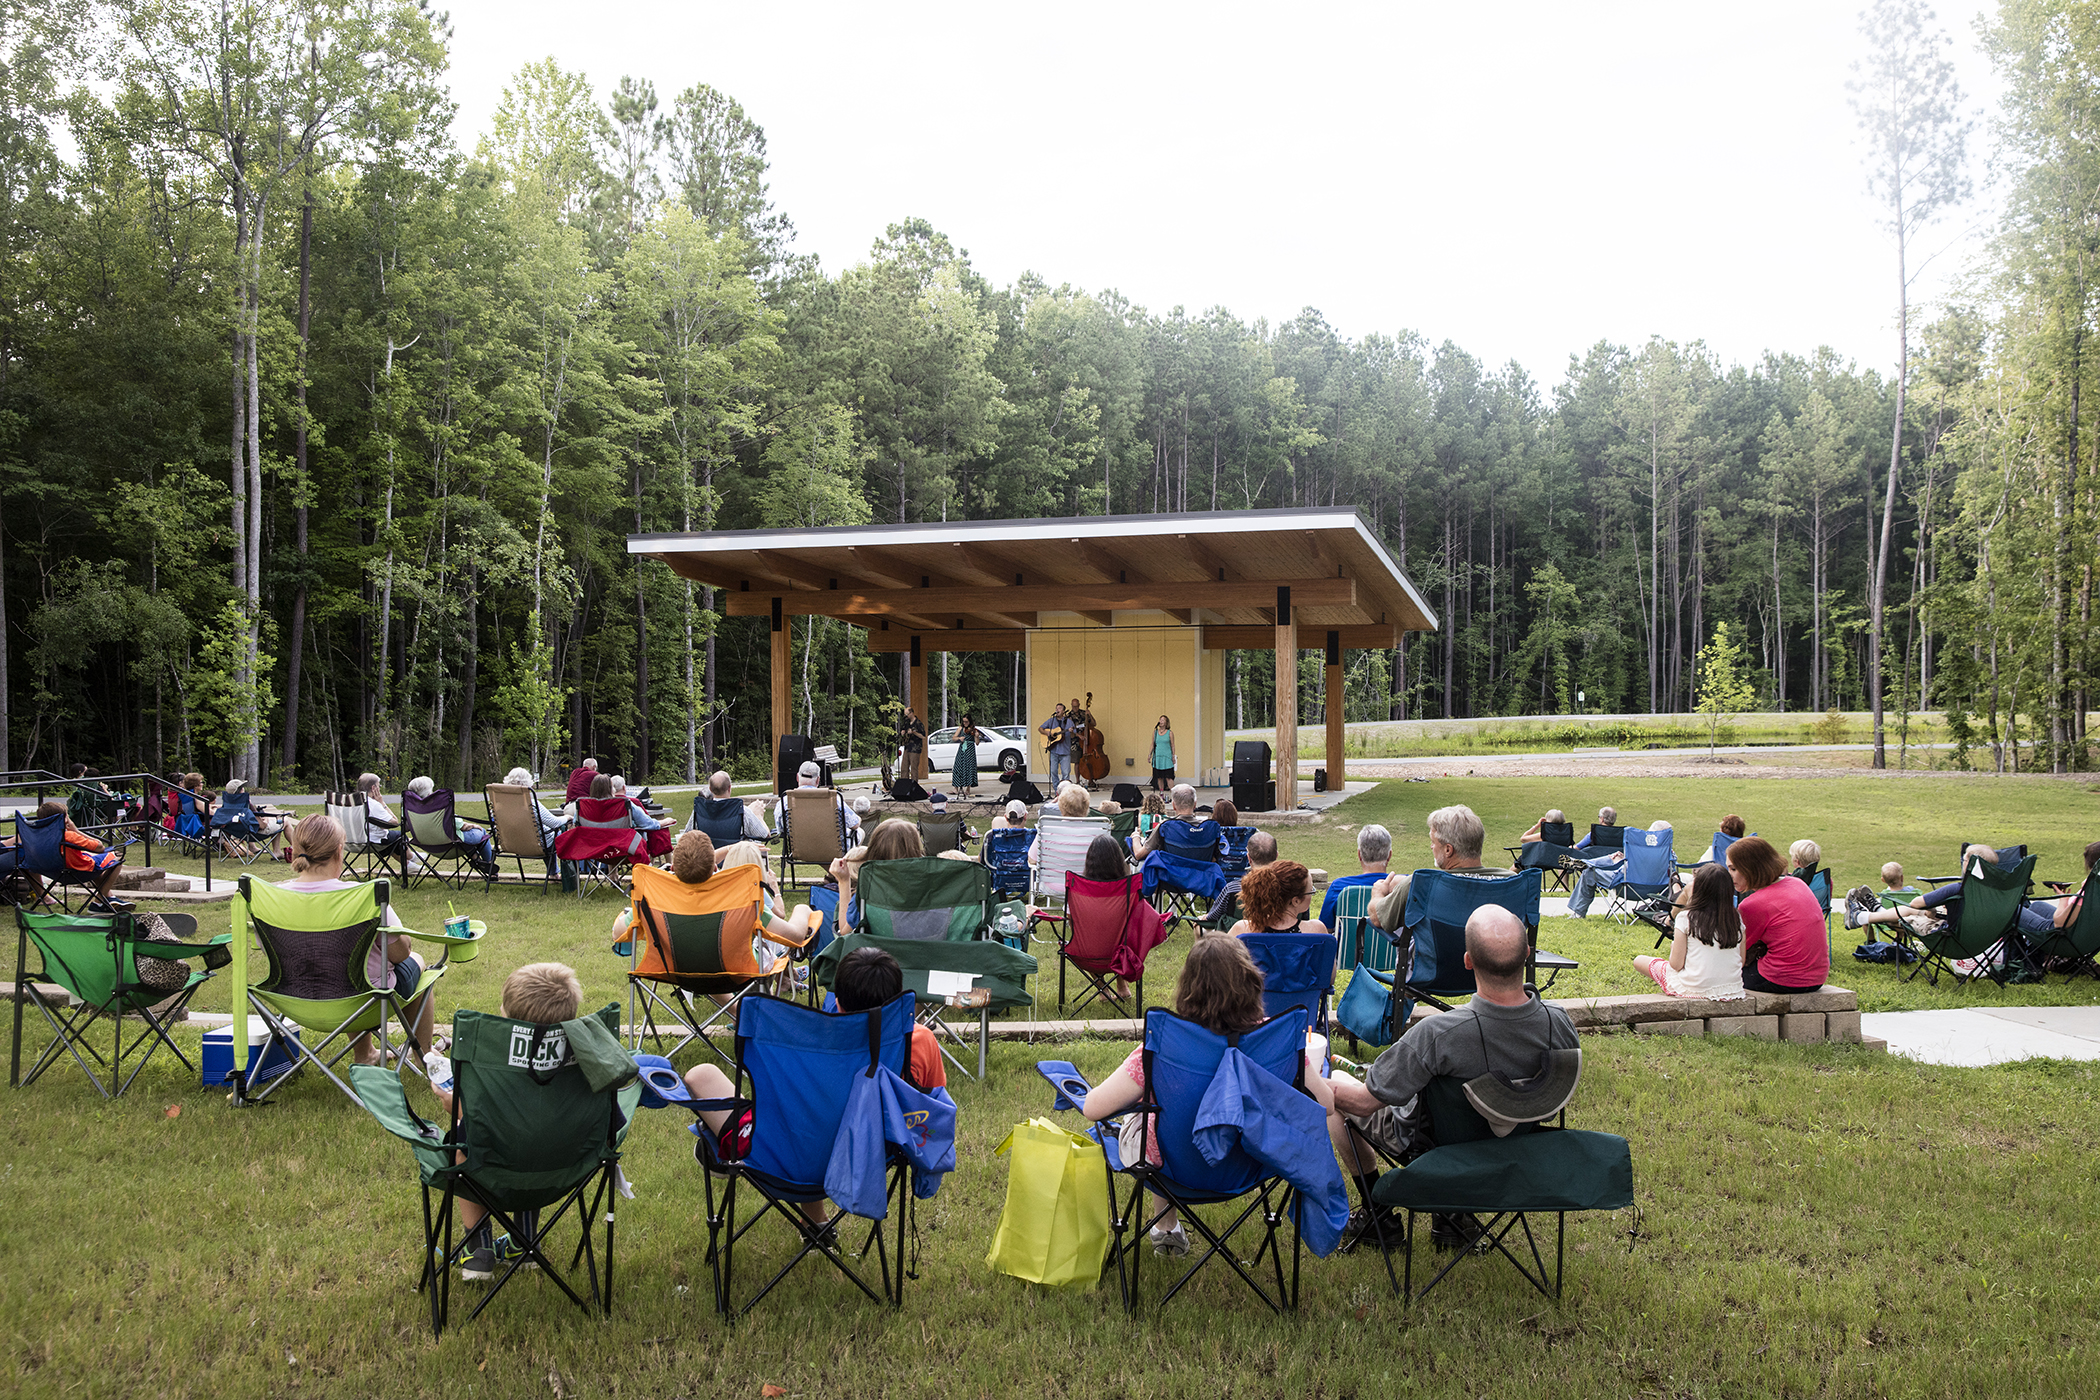 A crowd takes in a free concert by the Swift Creek Band at the Nature Park Amphitheater in Apex, NC